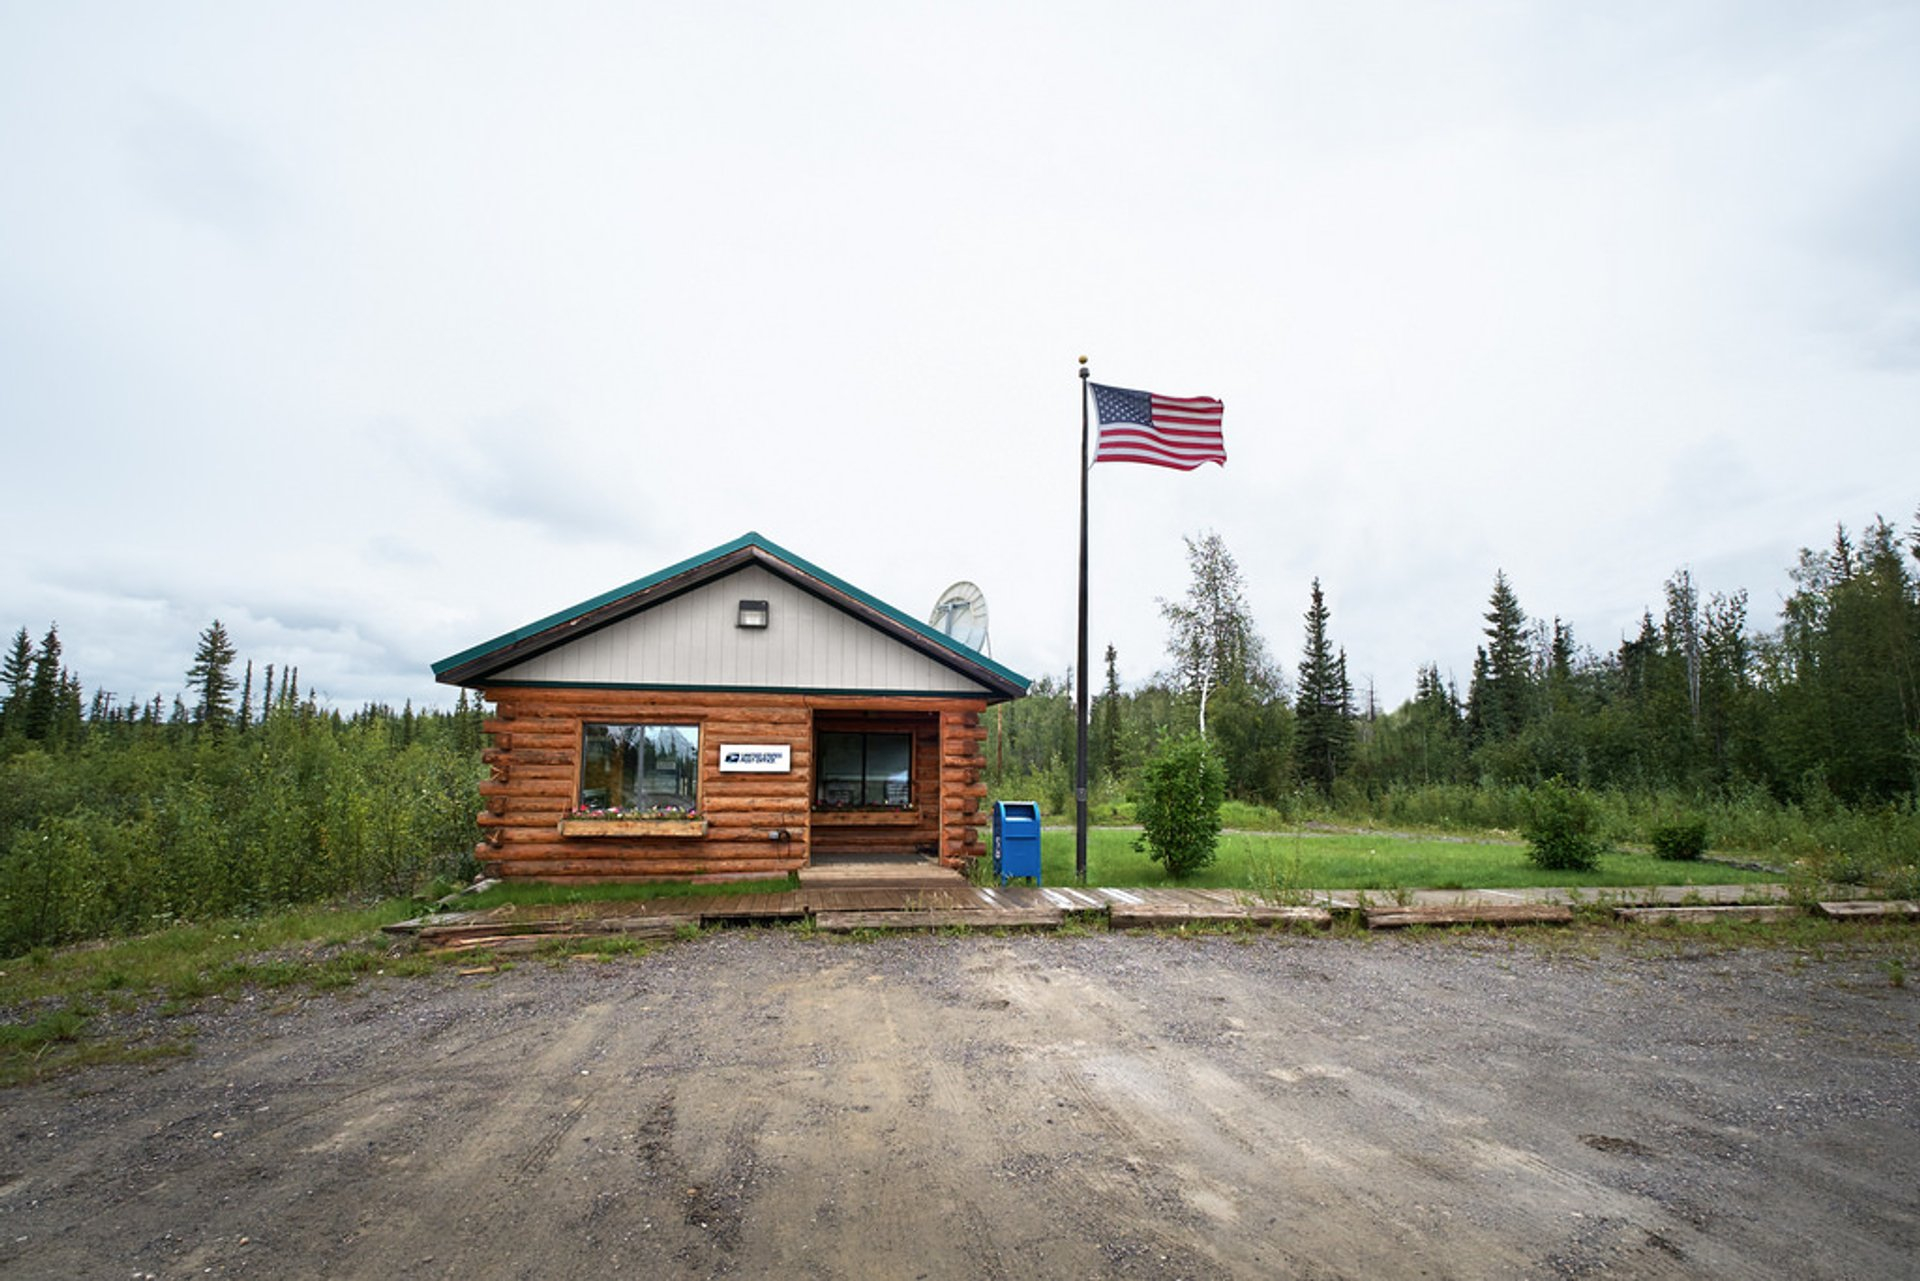 A remote Alaskan Native village near the Arctic Circle 2020